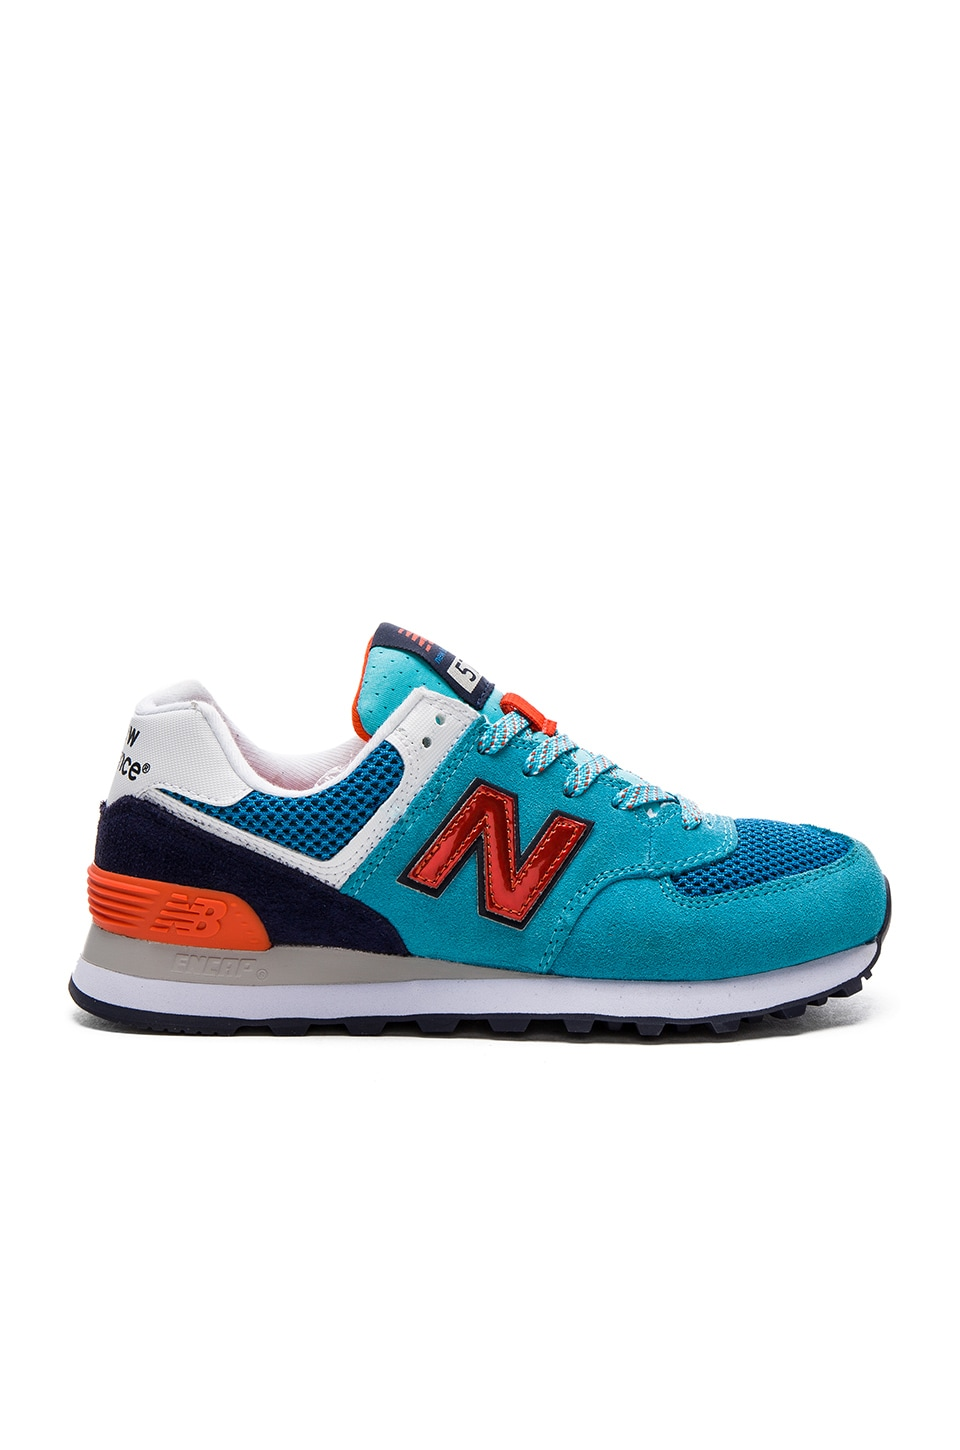 New Balance 574 Summit Sneaker in Bayside & Fireball